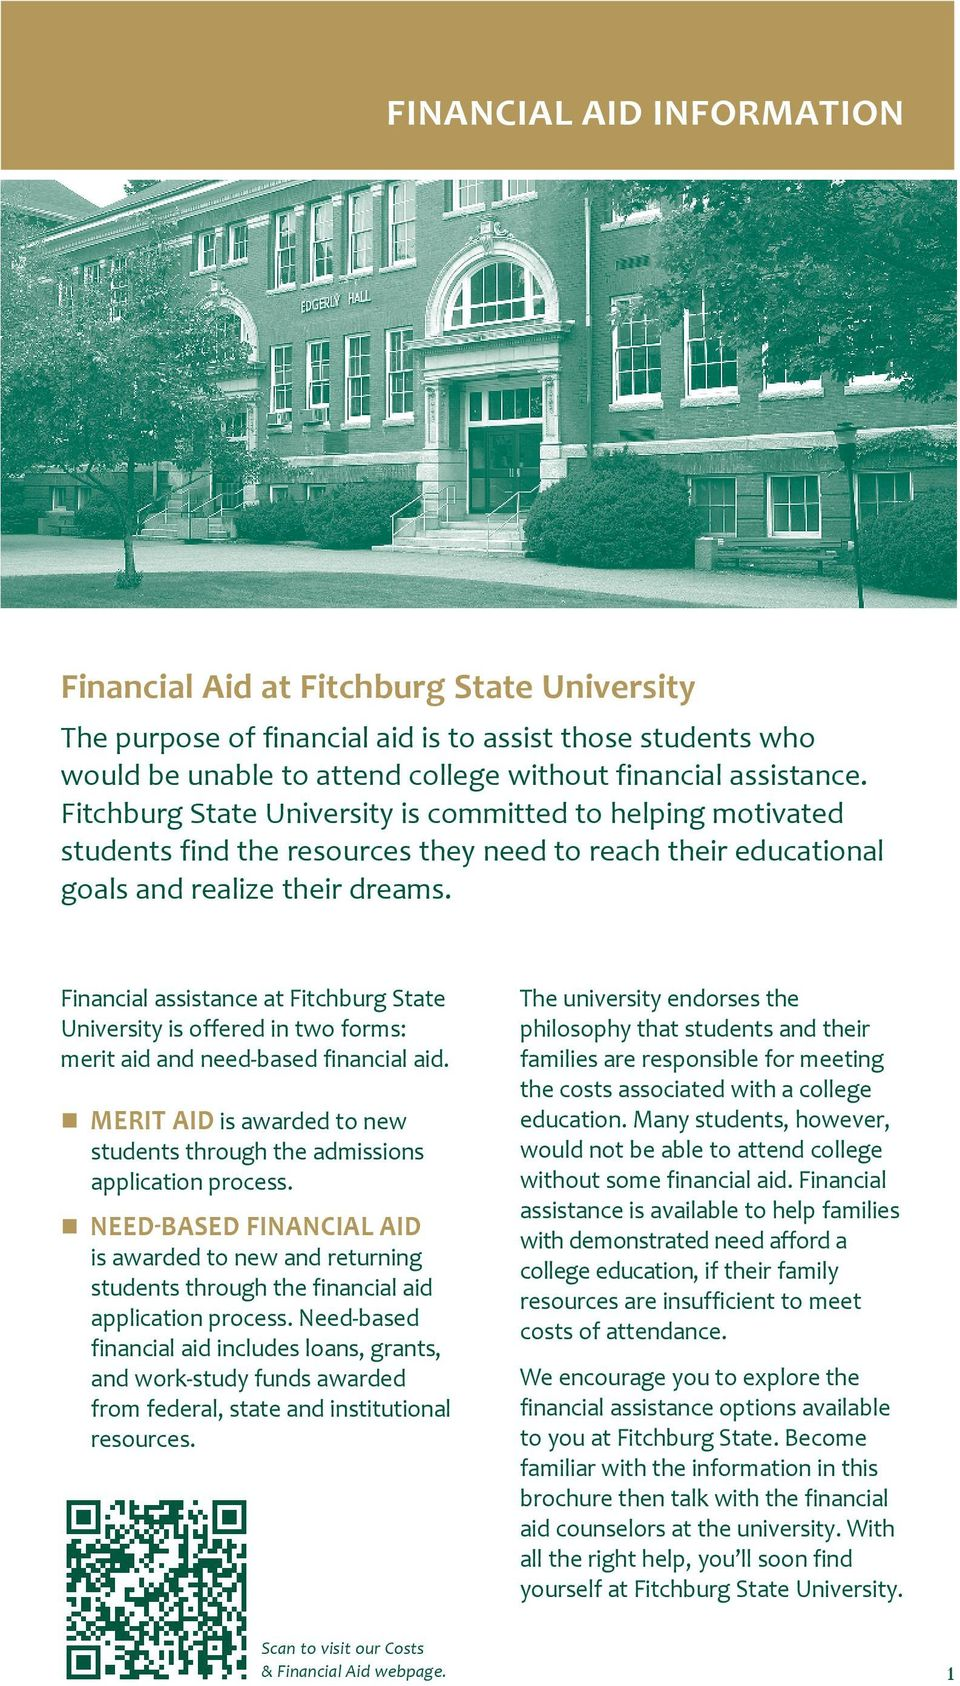 Financial assistance at Fitchburg State University is offered in two forms: merit aid and need-based financial aid. Merit Aid is awarded to new students through the admissions application process.